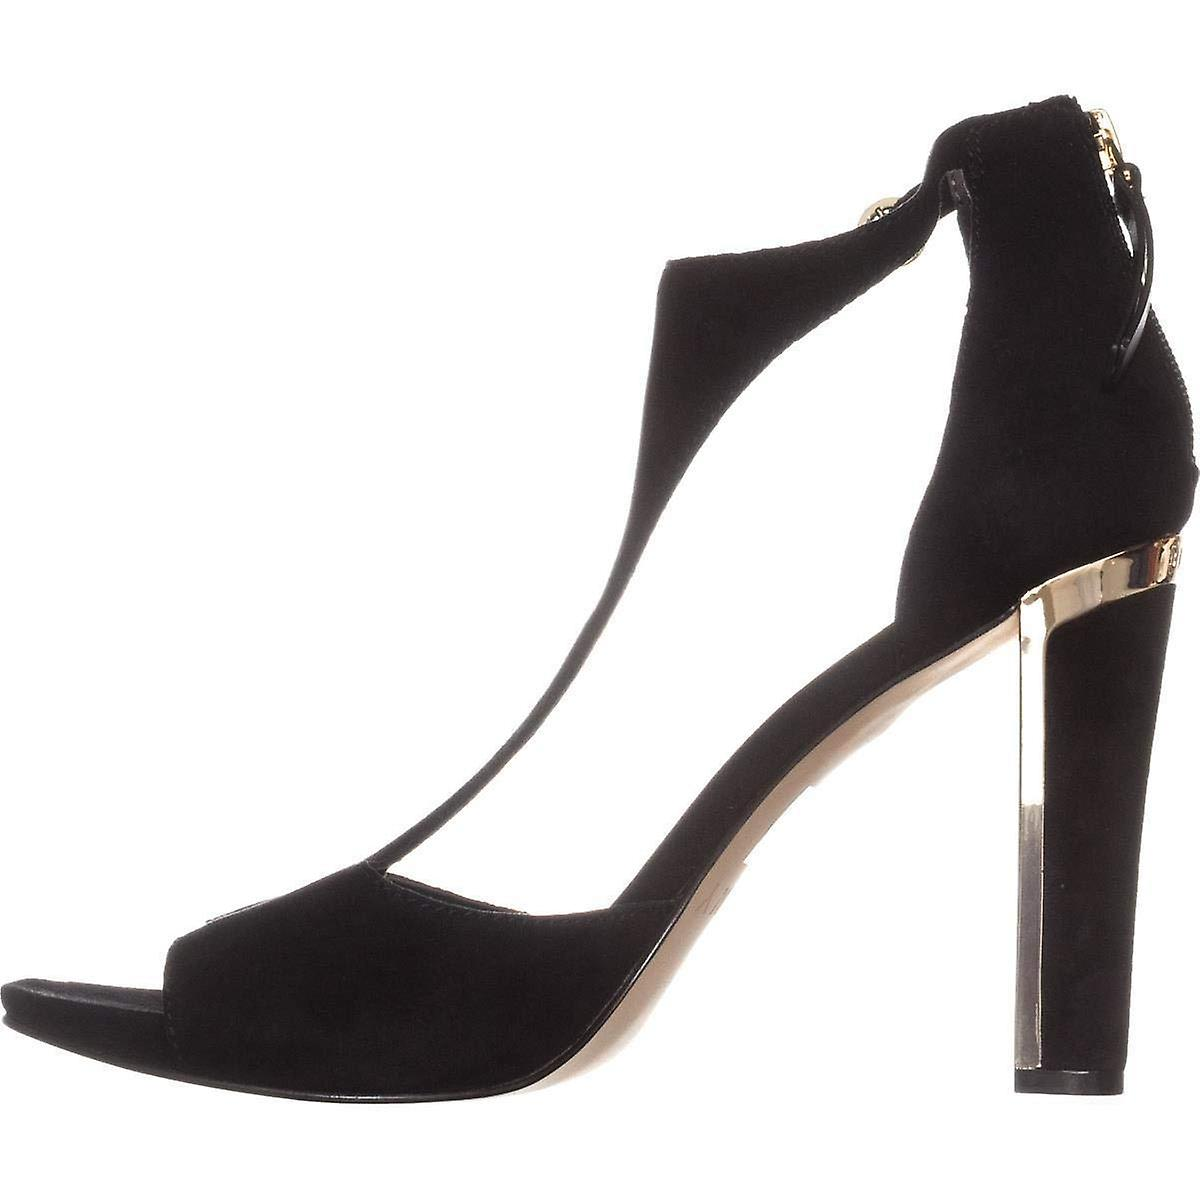 DKNY Colby T-Strap Dress Sandals, Black Suede